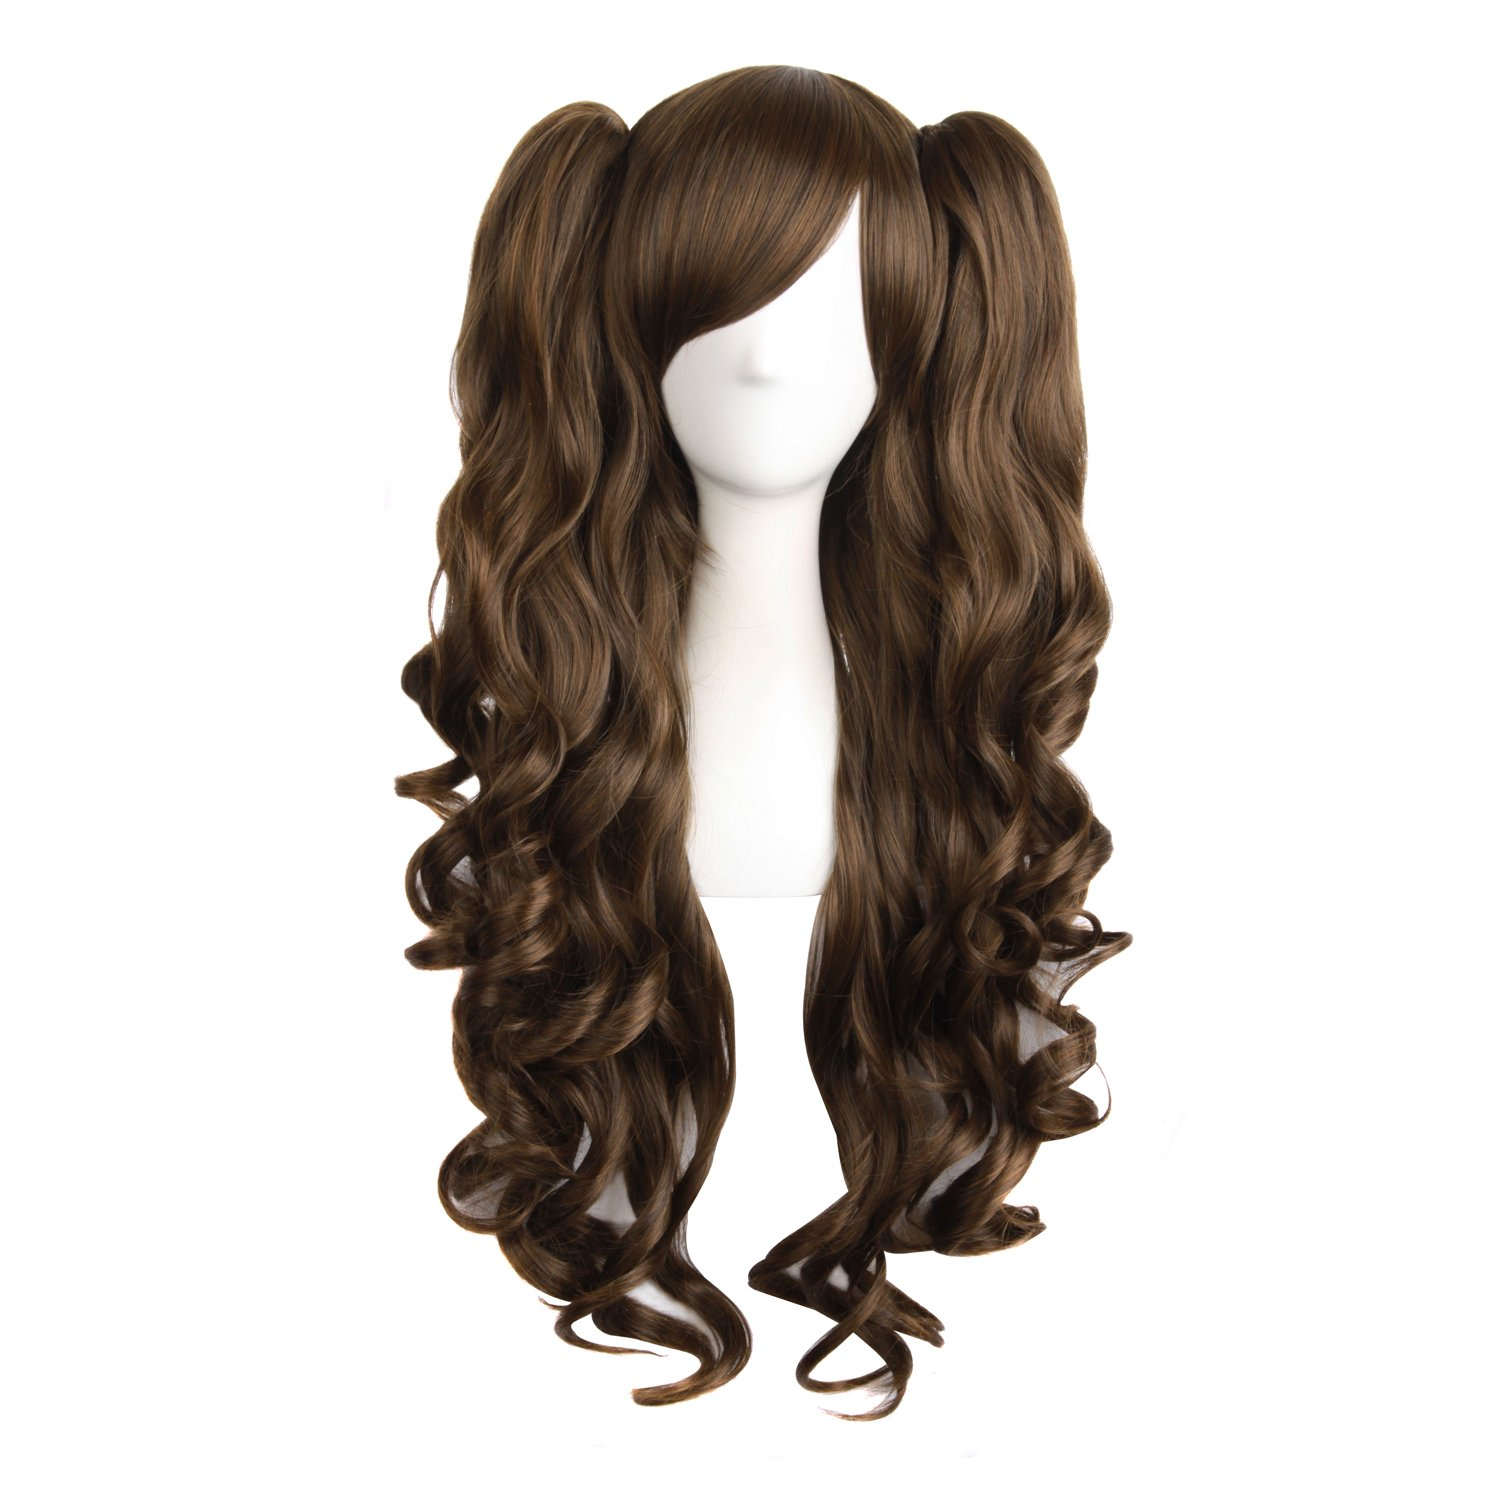 MapofBeauty Lolita Long Curly Clip on Ponytails Cosplay Wig (Light Blonde)